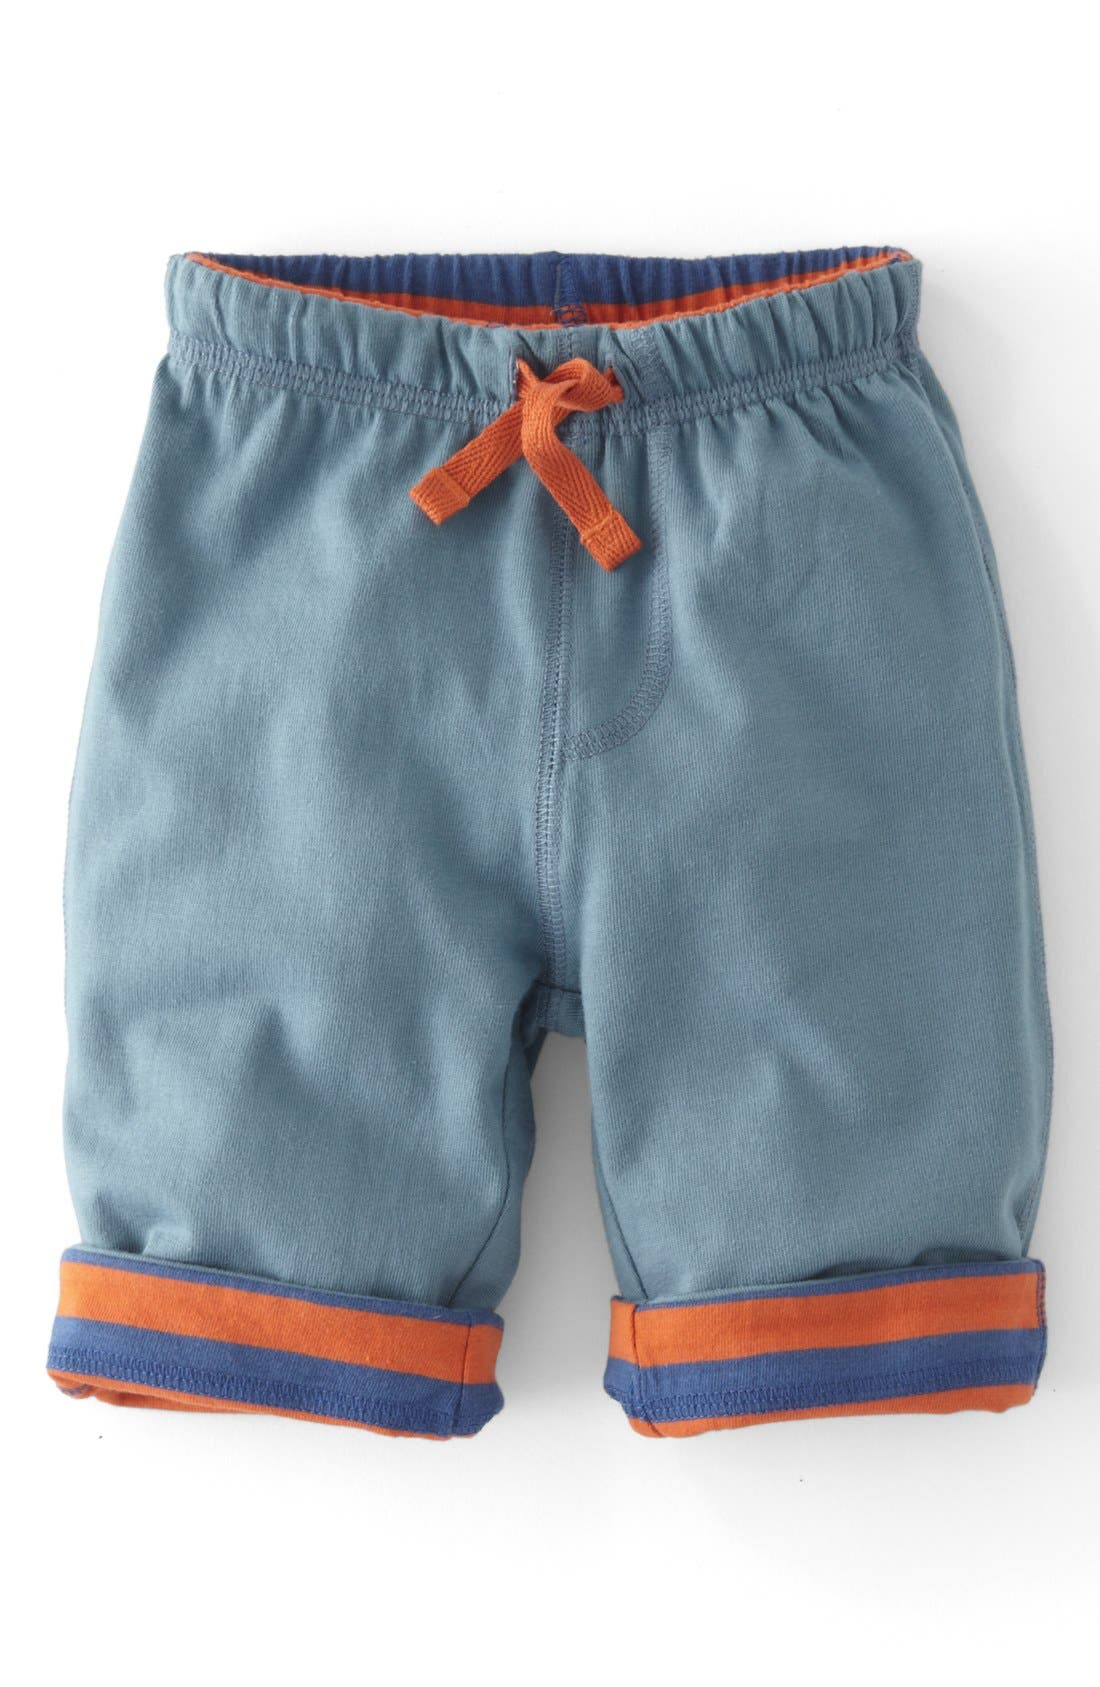 Alternate Image 1 Selected - Mini Boden Reversible Pants (Baby Boys)